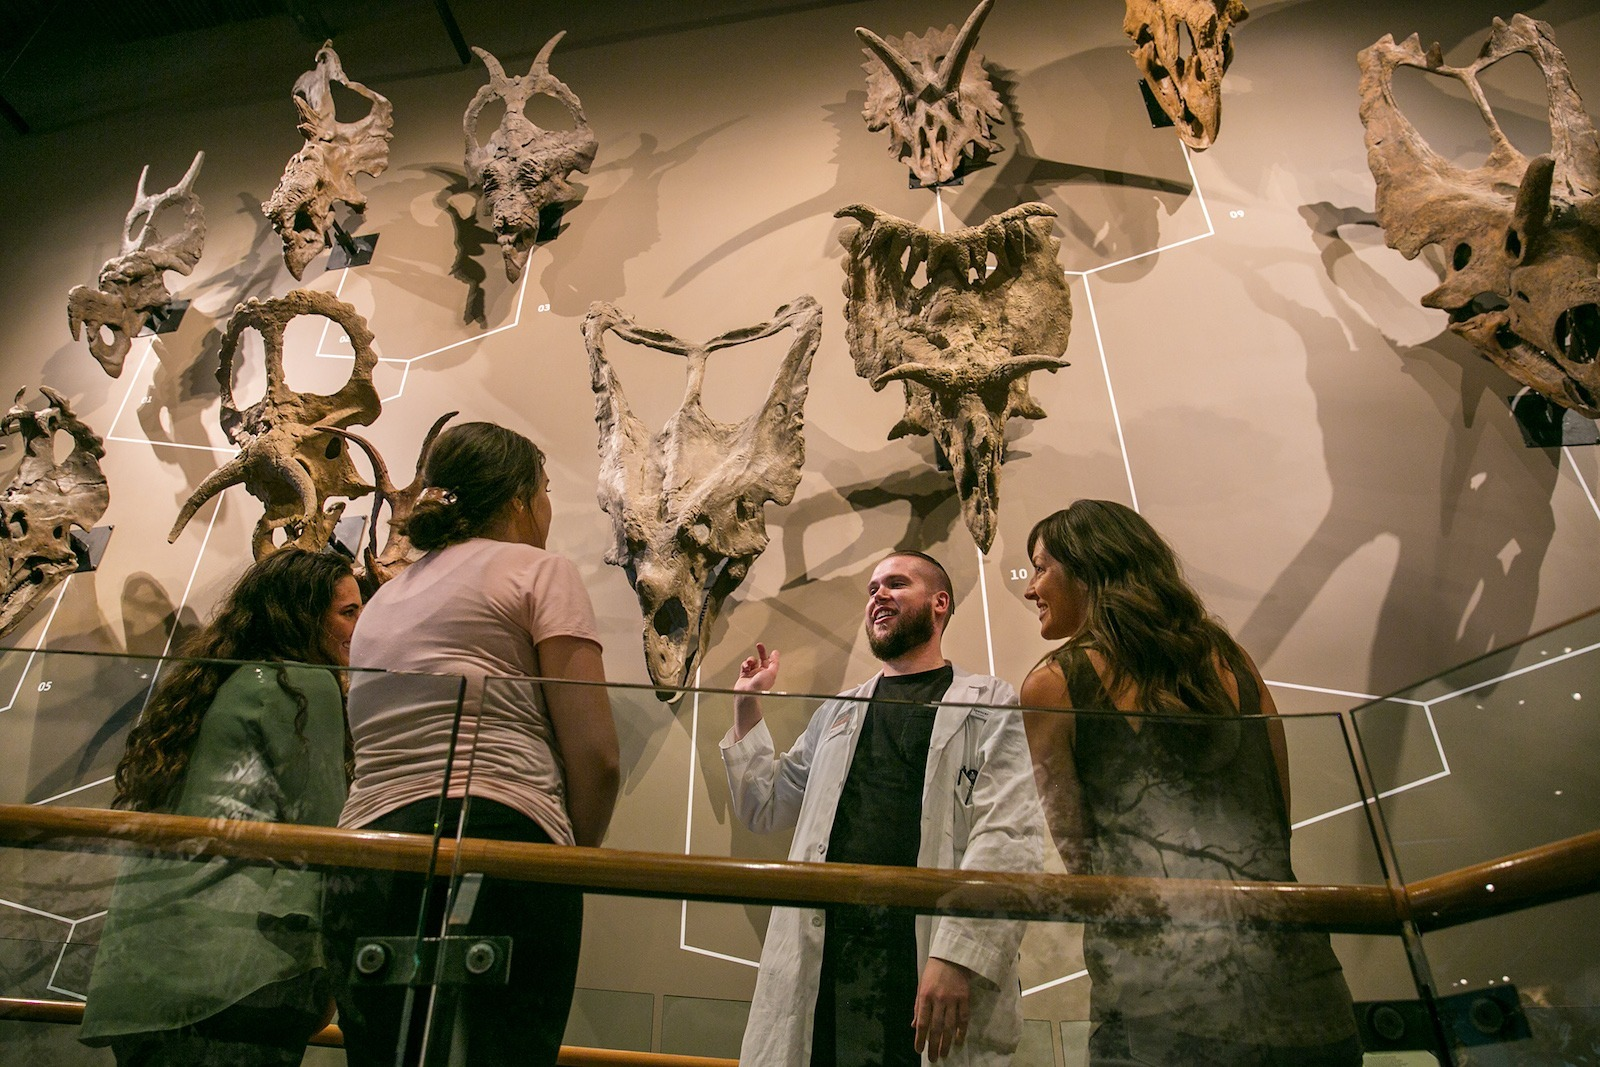 The dinosaur exhibit at the Natural History Museum of Utah is one the top Salt Lake City attractions